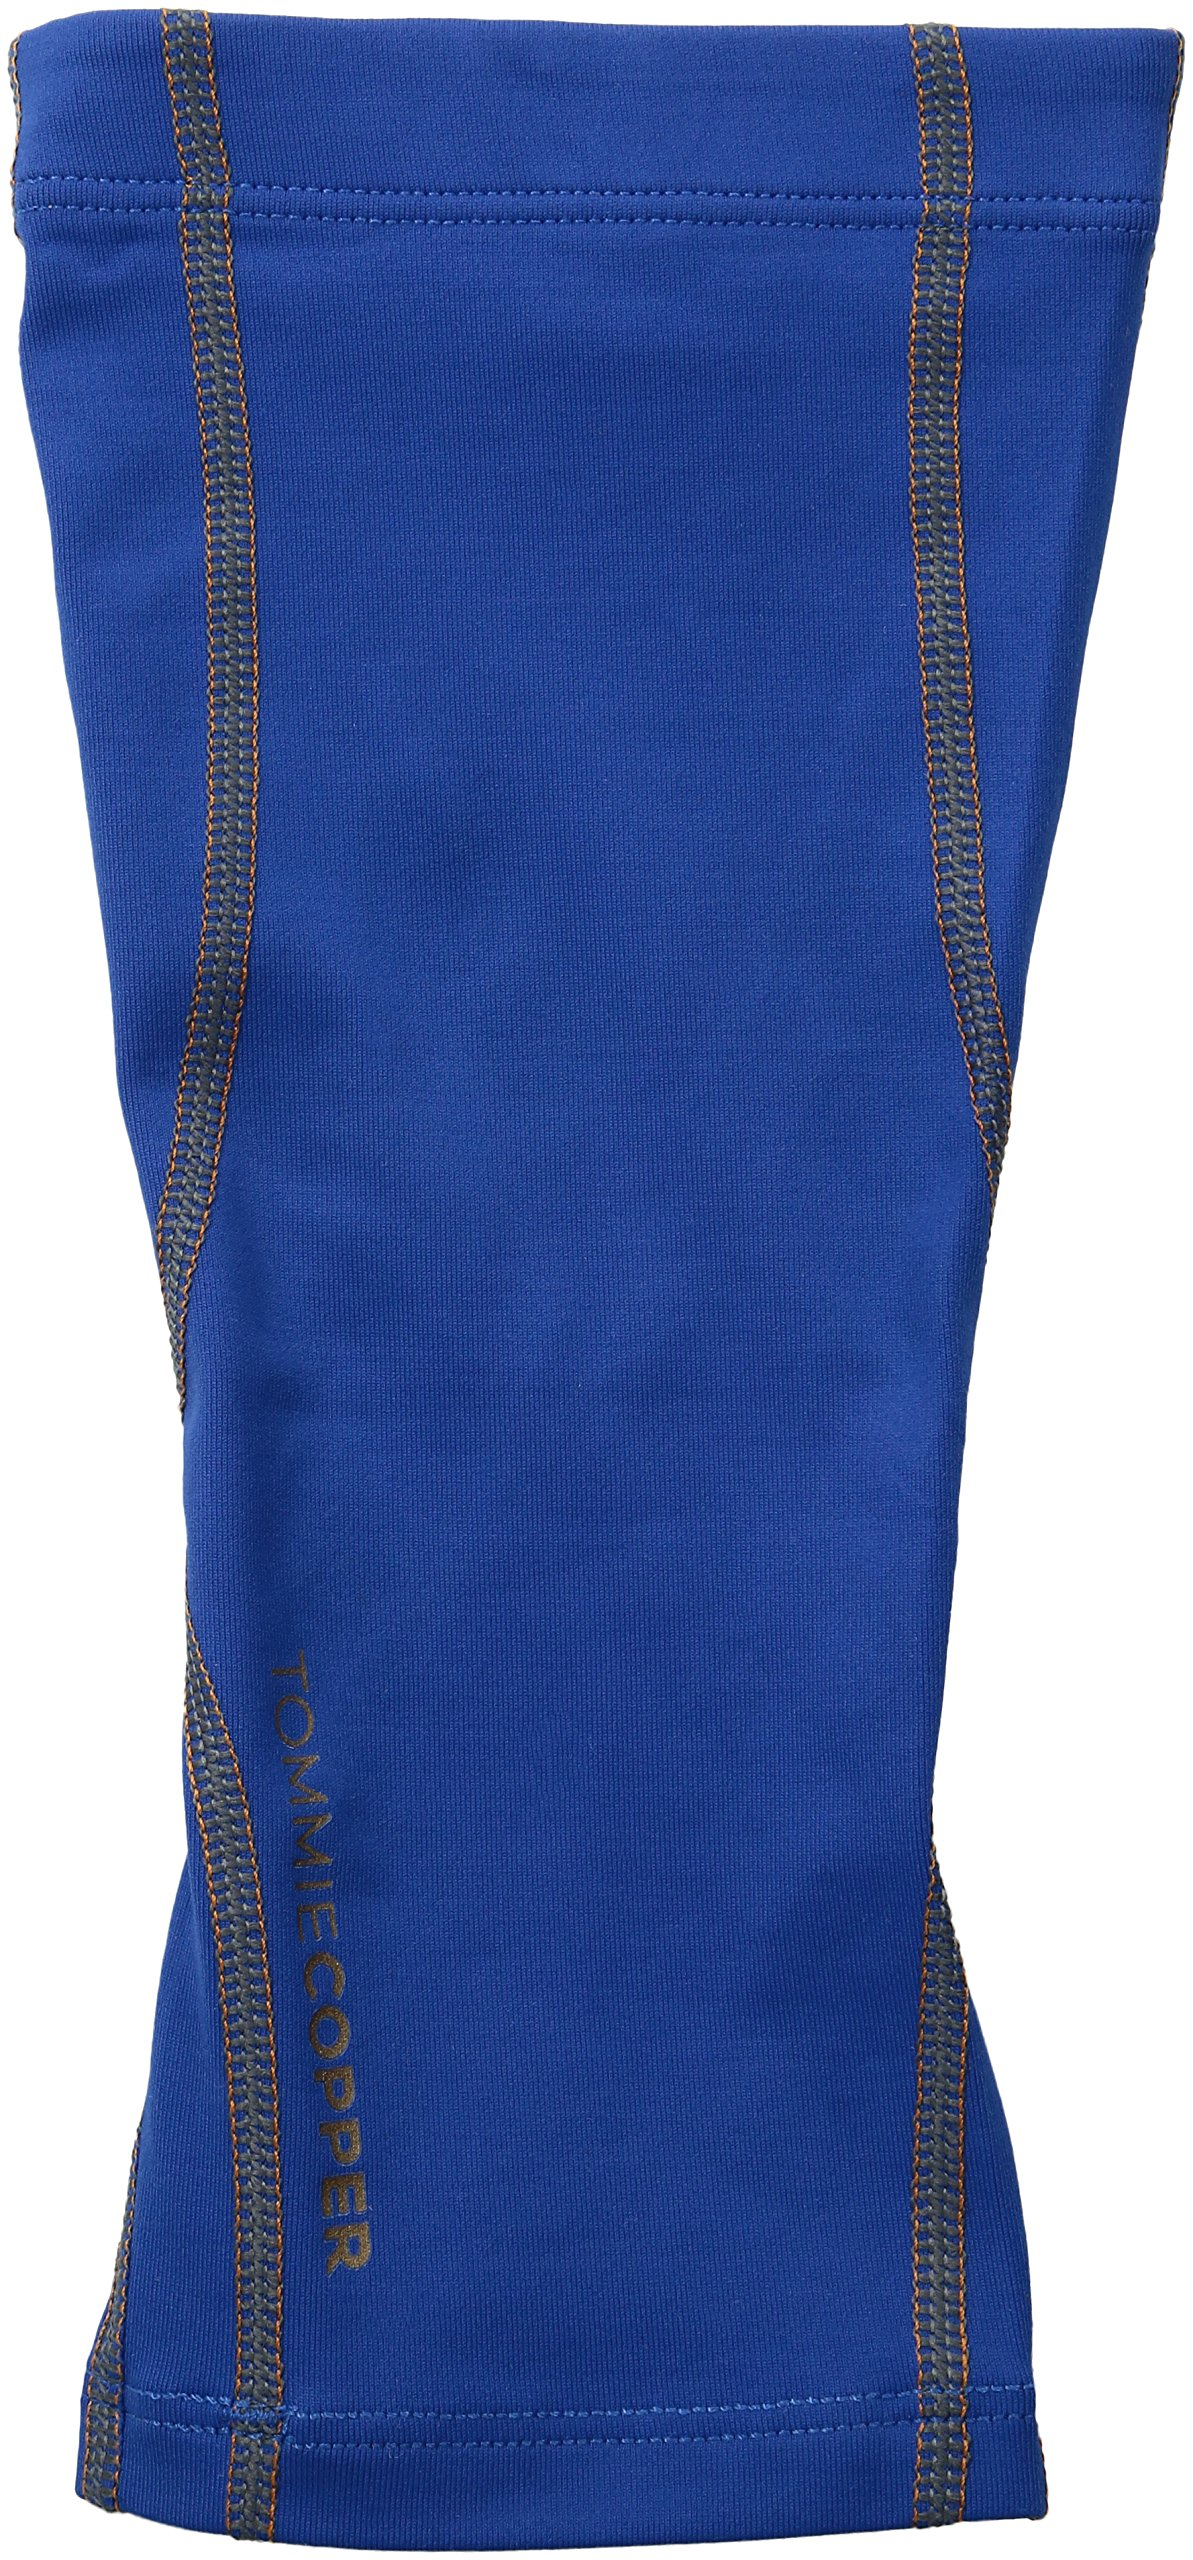 Tommie Copper Men's Performance Quad Sleeves 2.0, Small, Cobalt Blue